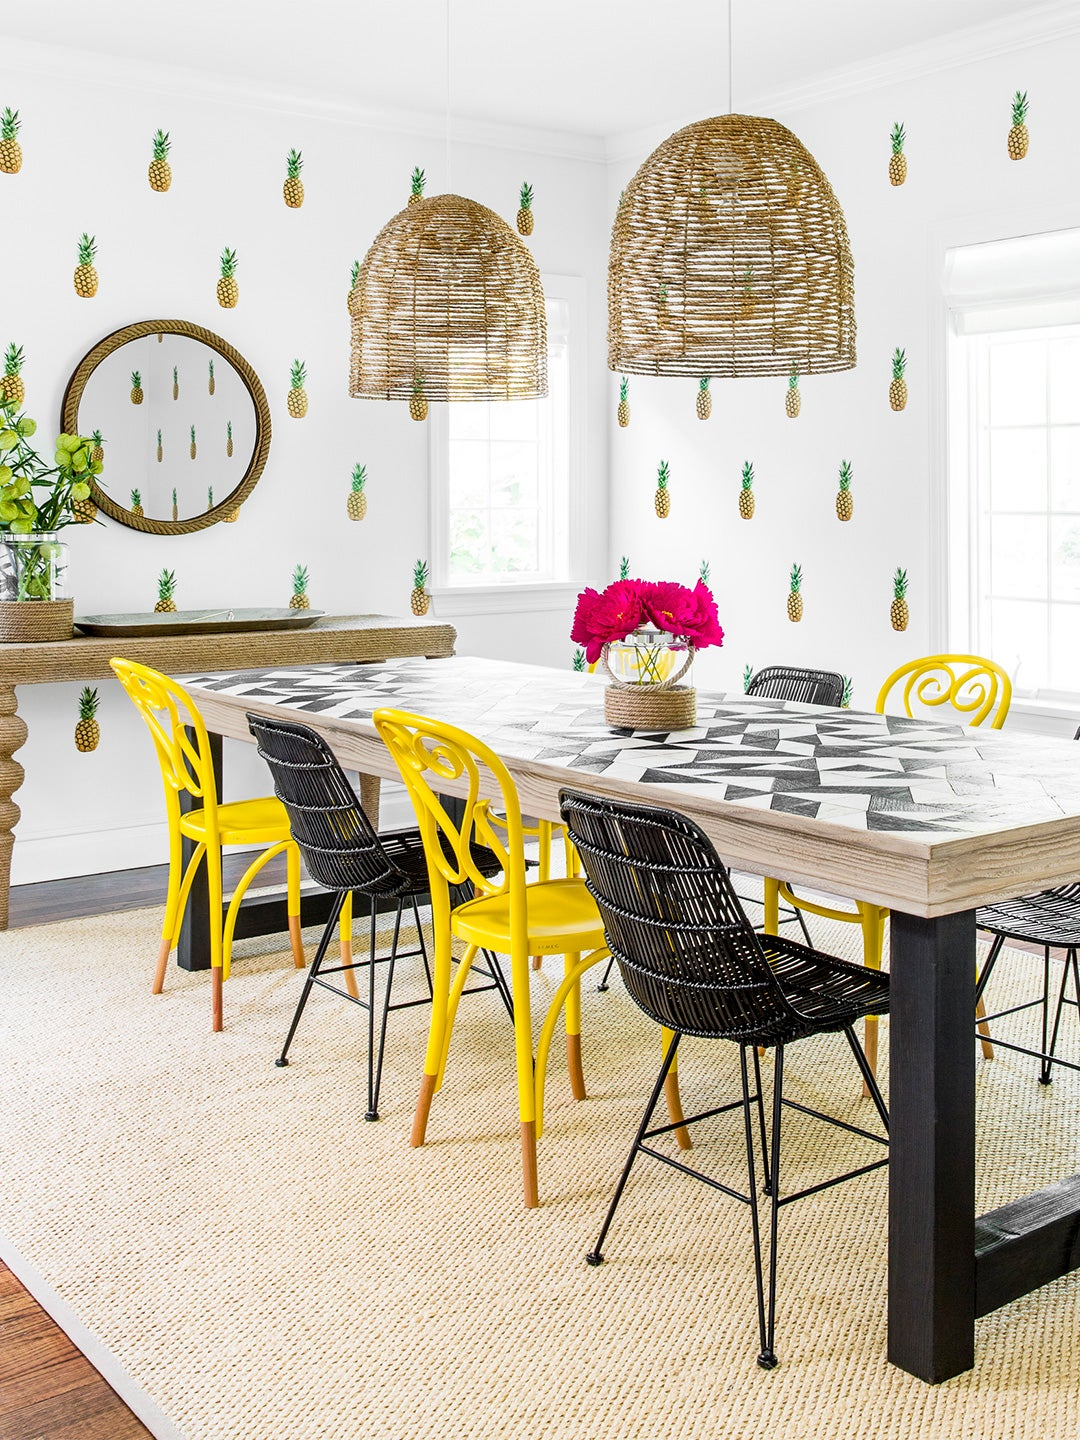 dining room with pineapple decals on wall and yellow chairs